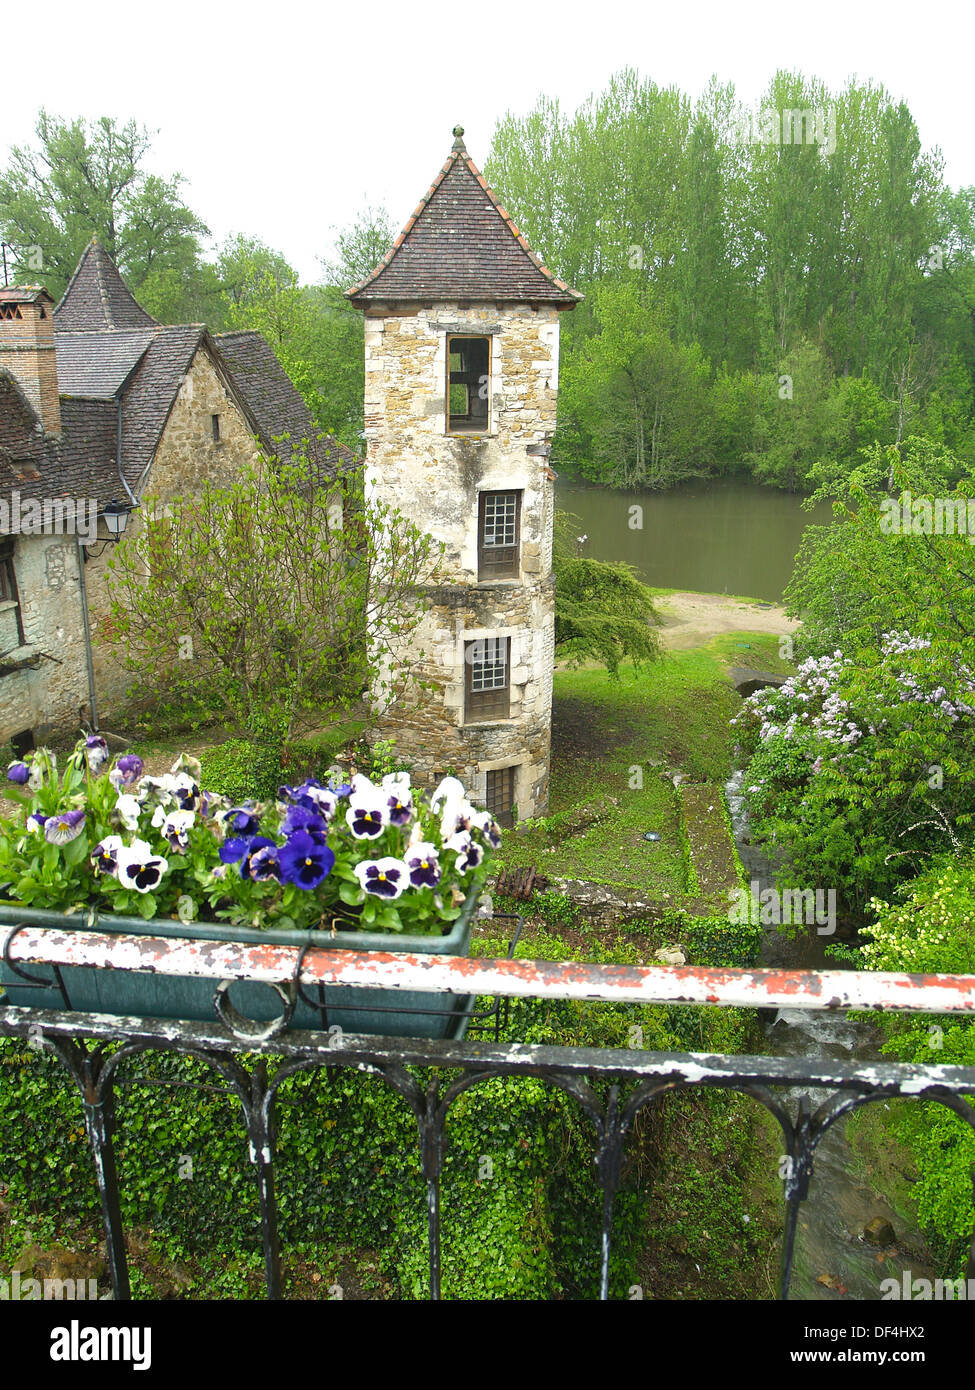 A tower in the prettiest Village in France, Carennac - Stock Image